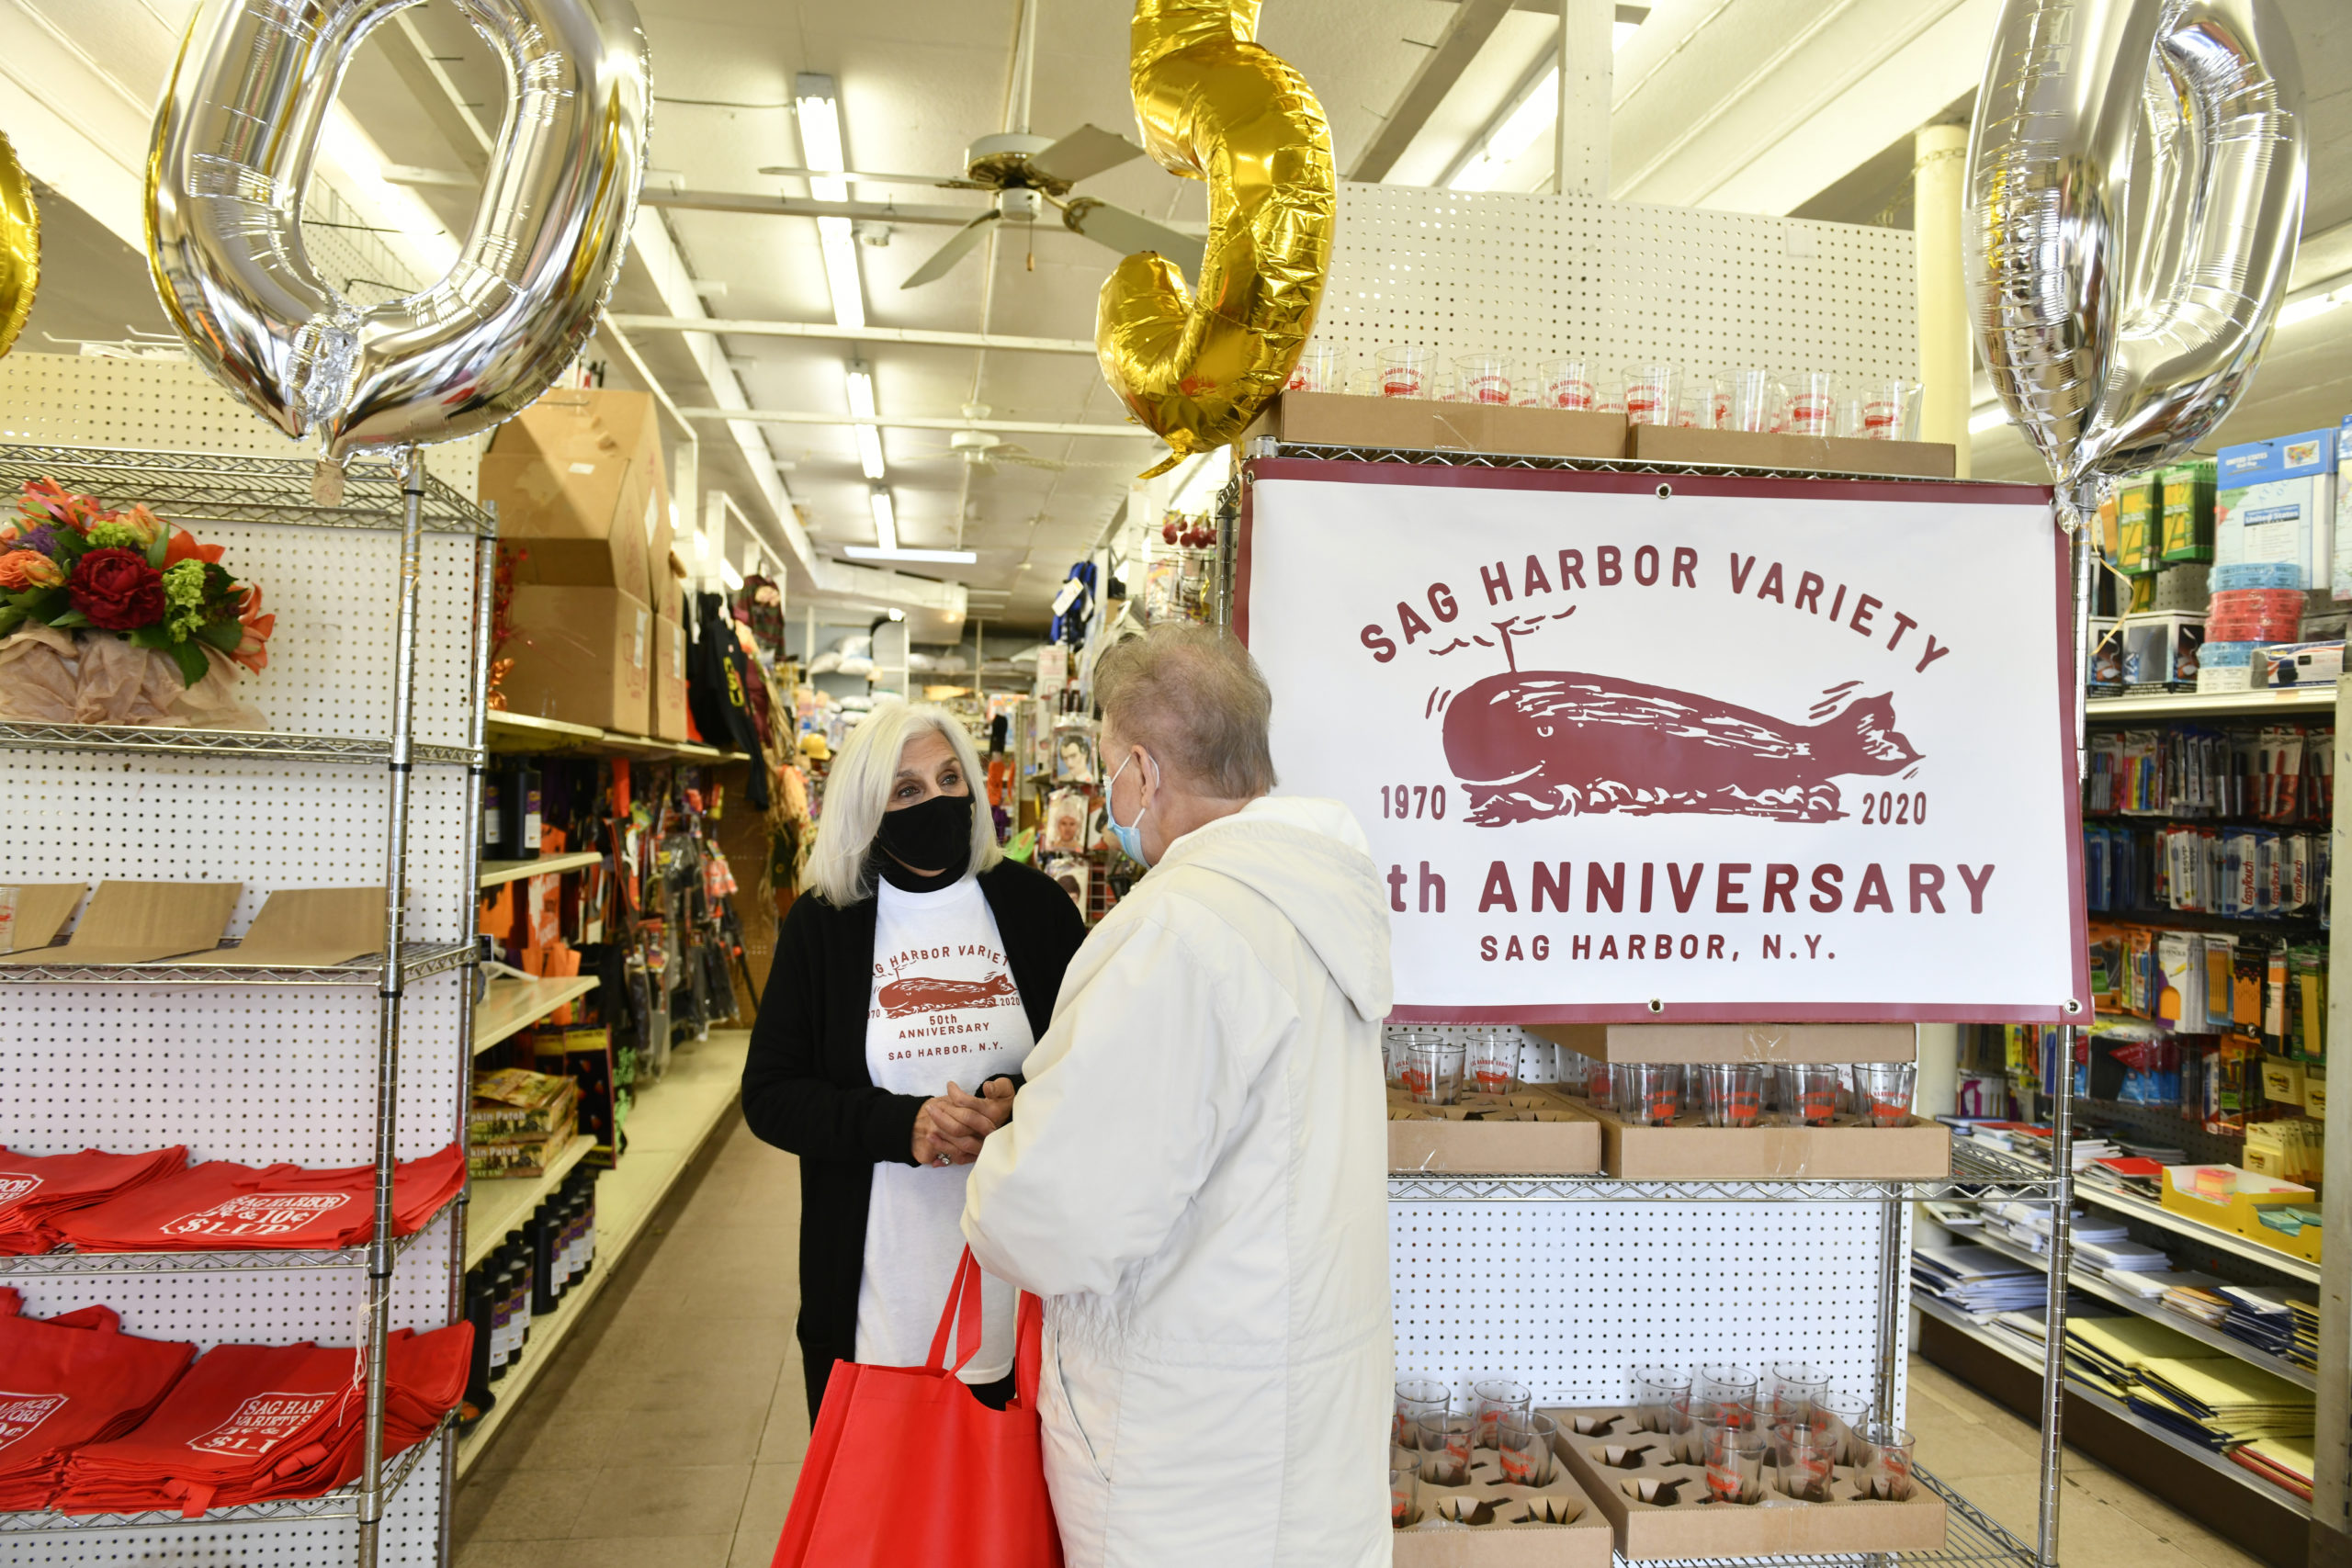 Roseann Bucking chats with a customer on Saturday at the Sag Harbor Variety Store's 50th anniversary celebration.  DANA SHAW